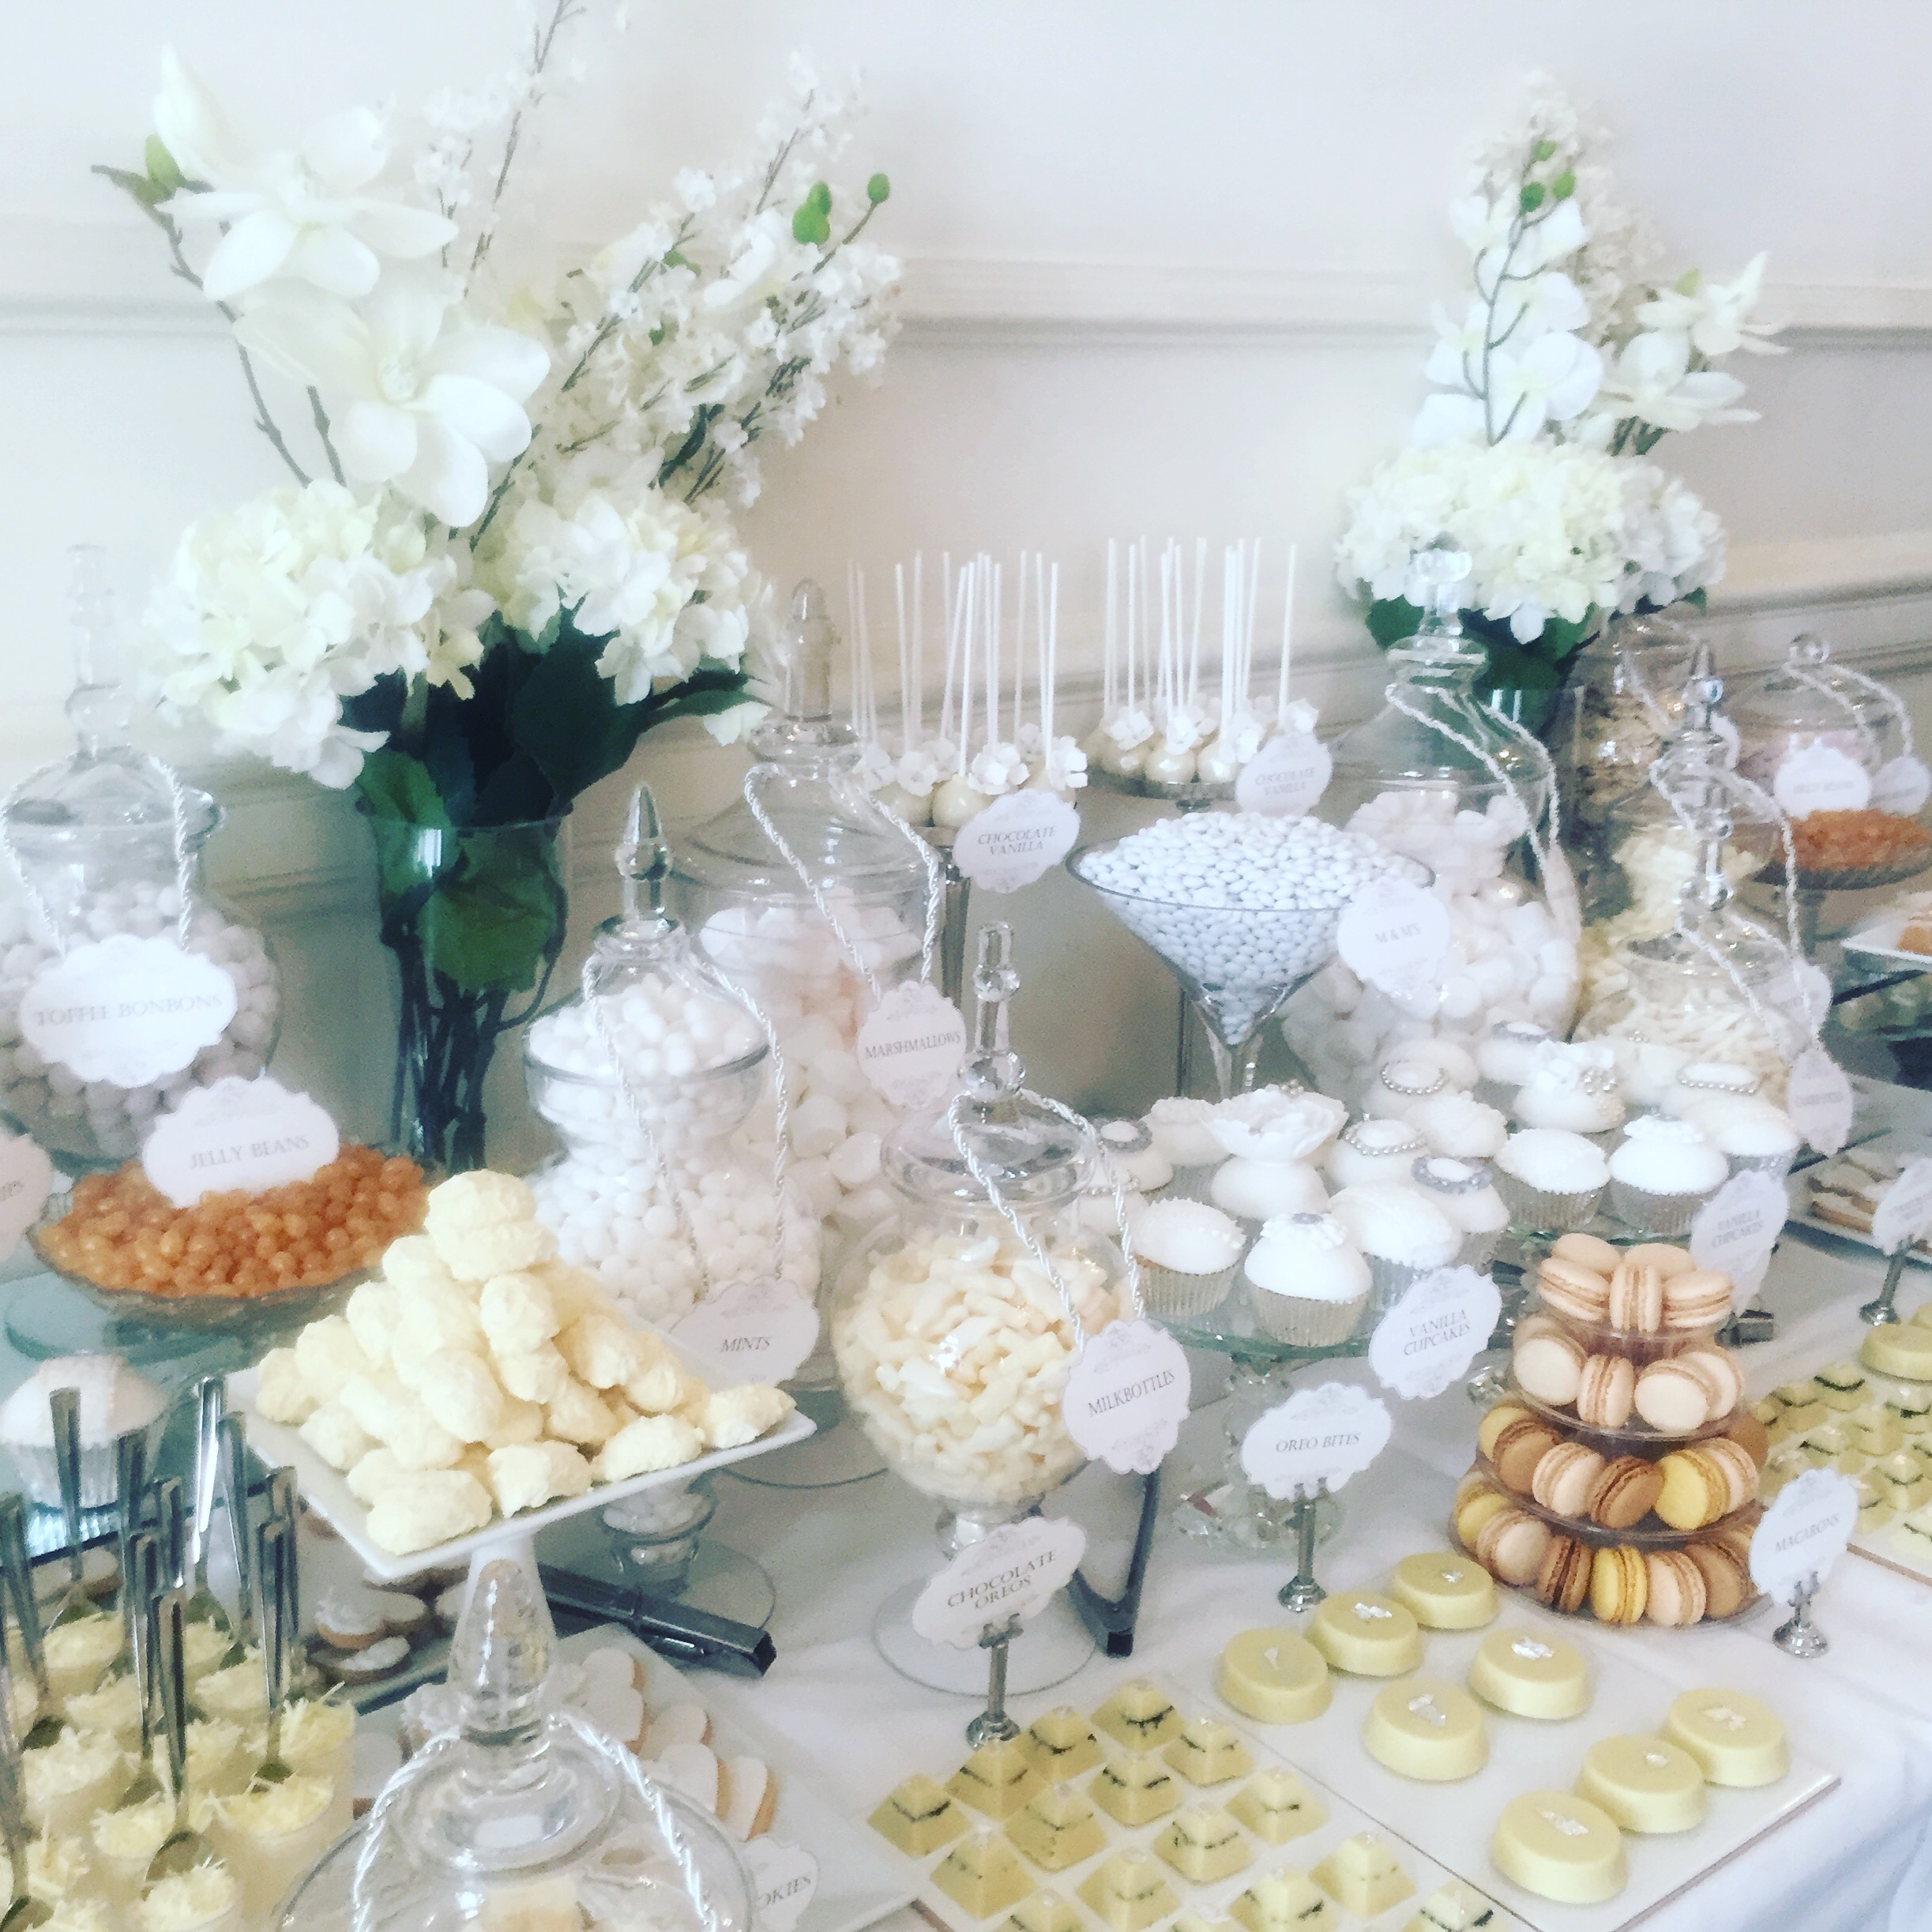 Wedding Dessert Table in White